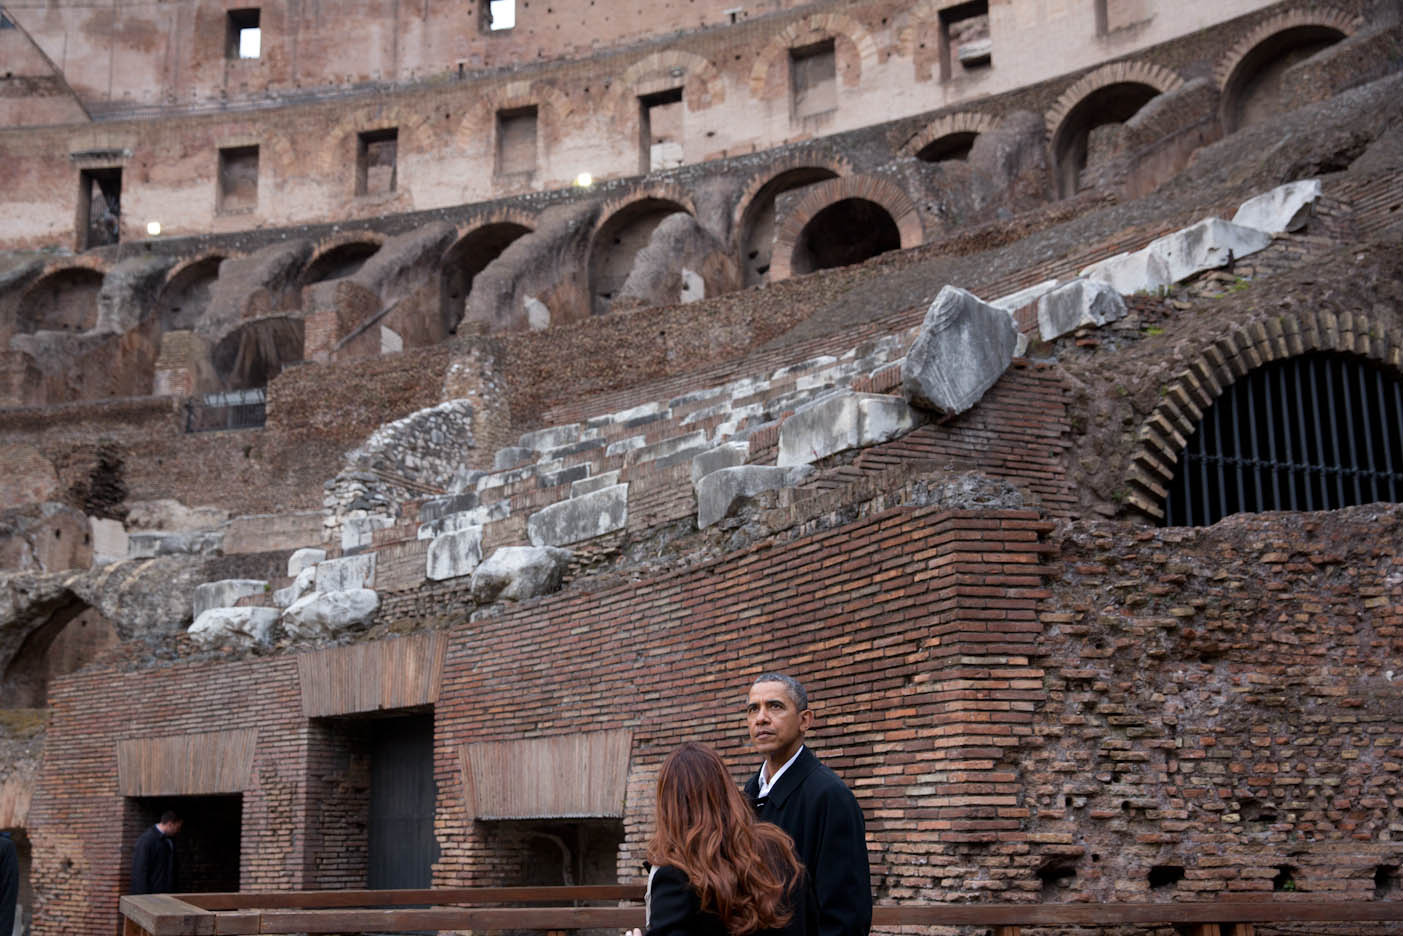 President Barack Obama with Barbara Nazzaro, Technical Dir. and Architect of the Colosseum, tour the Colosseum in Rome, Italy, March 27, 2014.